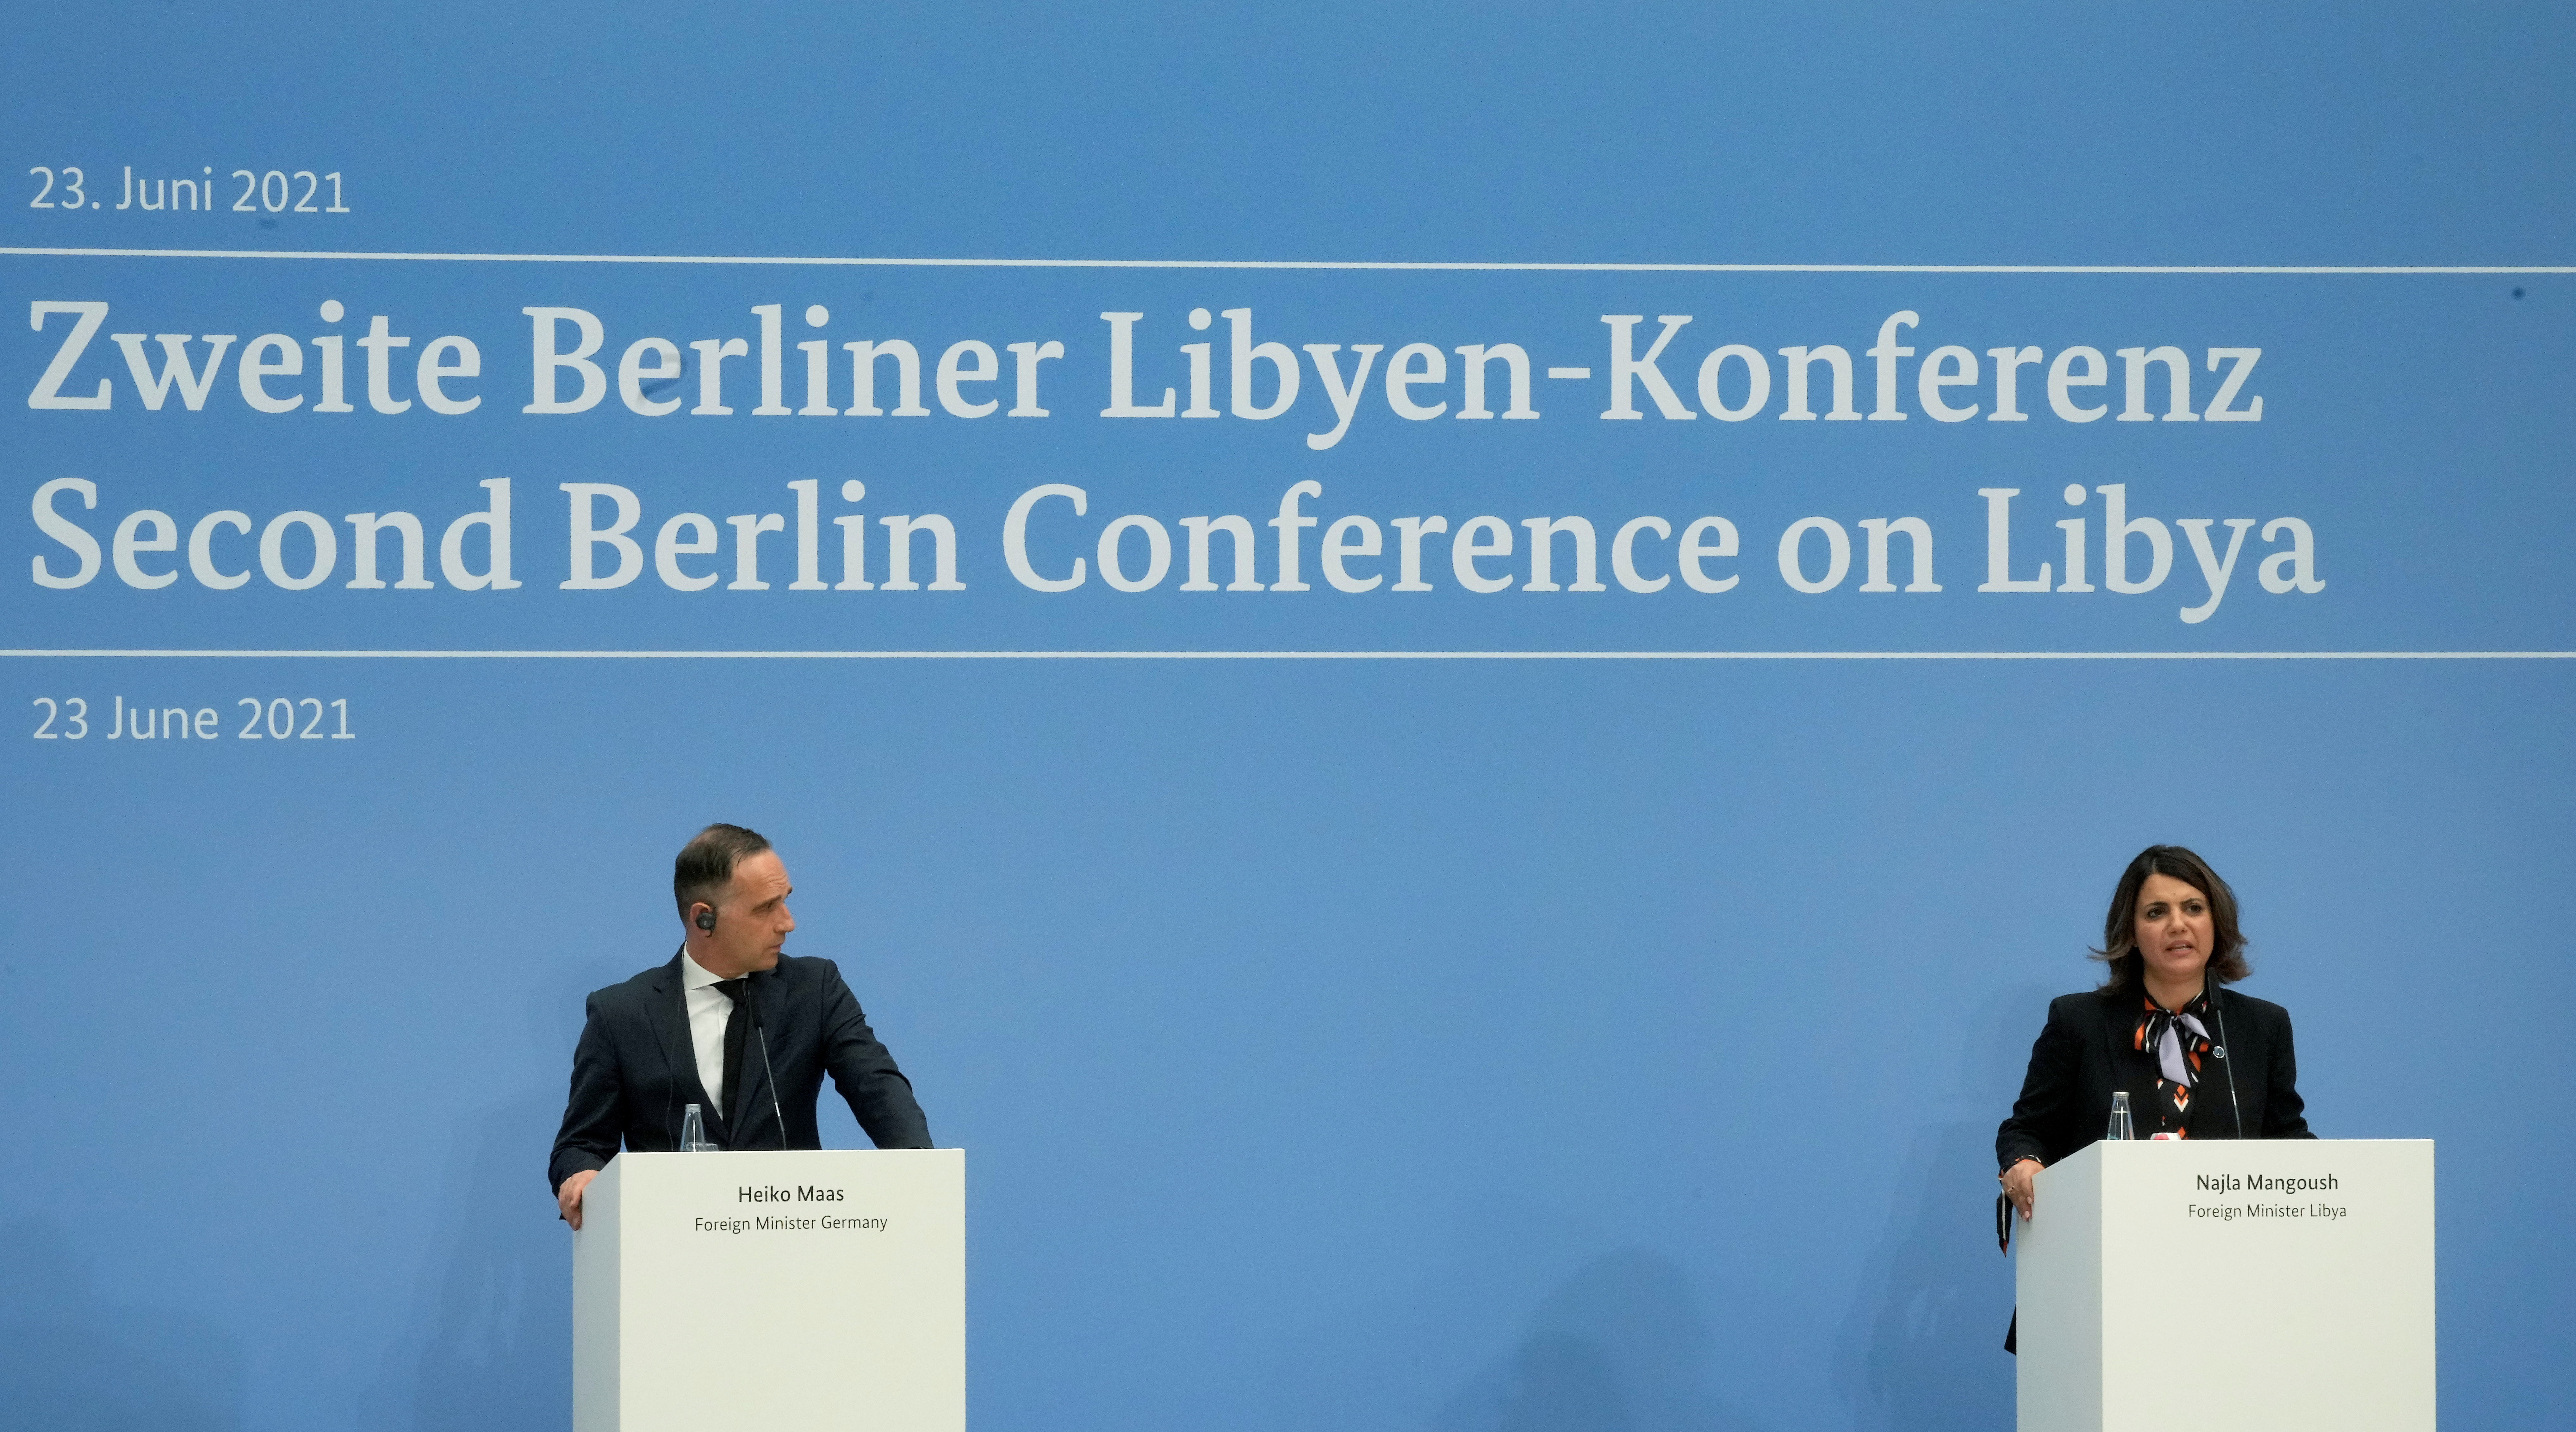 German Foreign Minister Heiko Maas and Libyan Foreign Minister Najla Mangoush attend a joint press conference as part of the 'Second Berlin Conference on Libya' at the foreign office in Berlin, Germany June 23, 2021. Michael Sohn/Pool via REUTERS